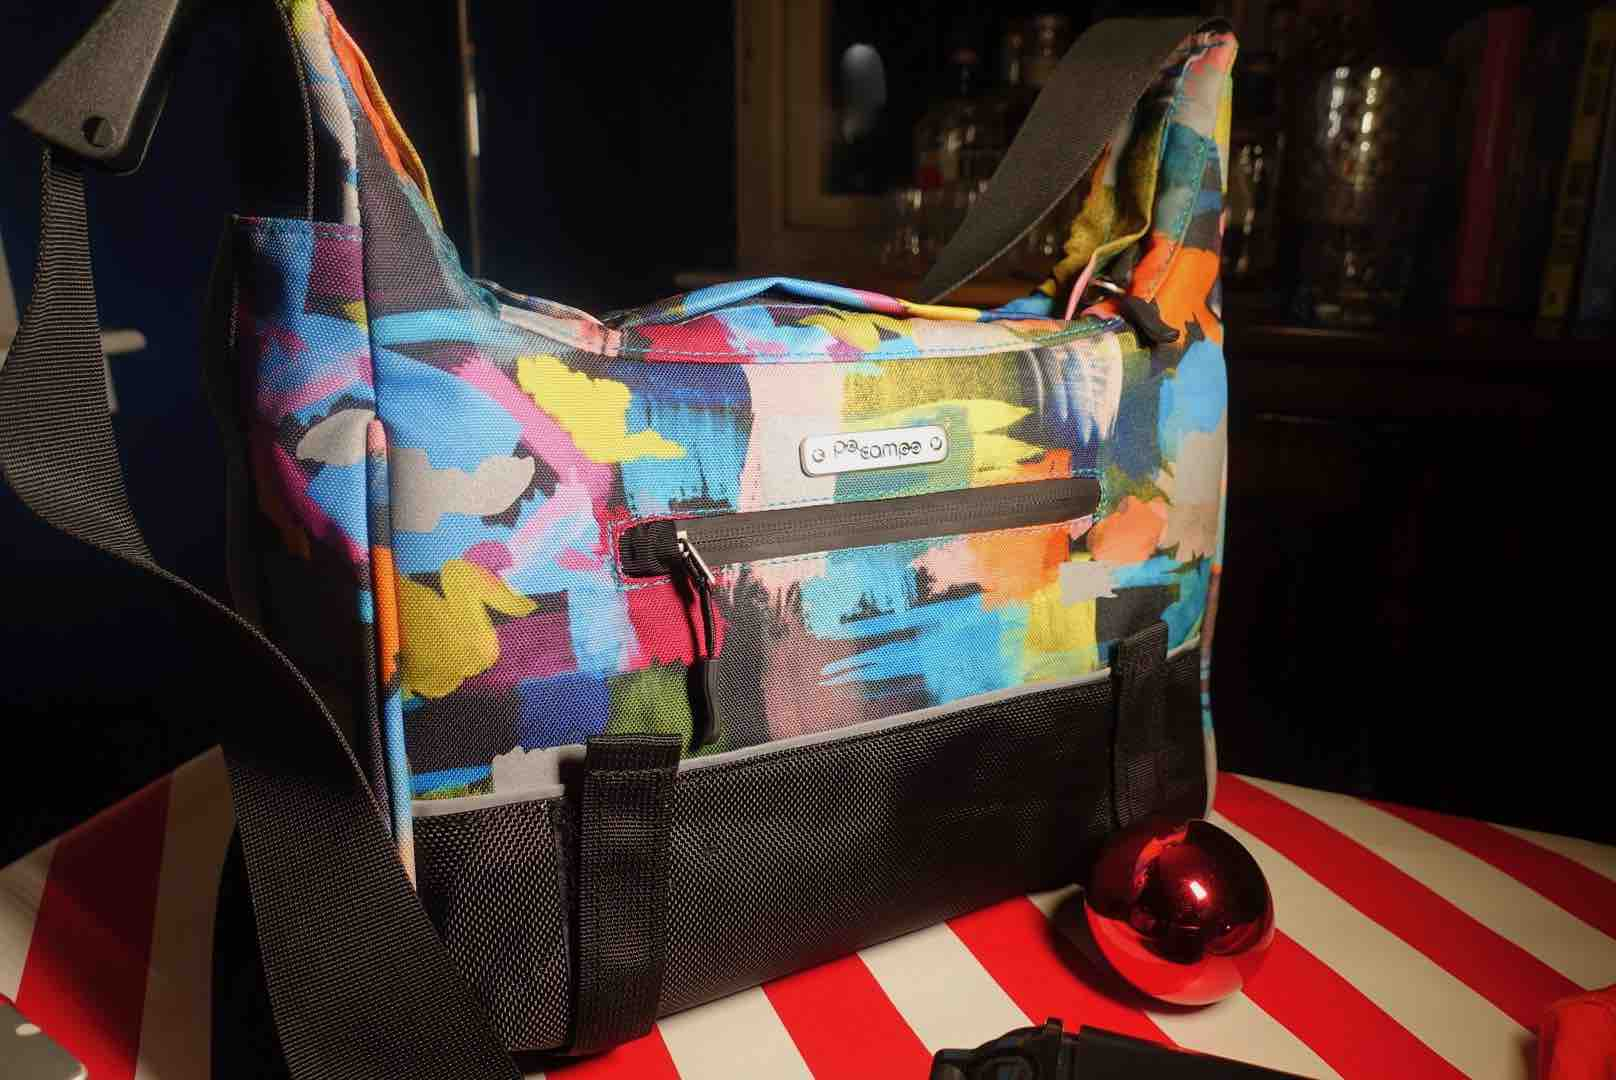 Po Campo Po Campo Chelsea Bike Trunk Bag will let her be seen while riding on bike or scooter